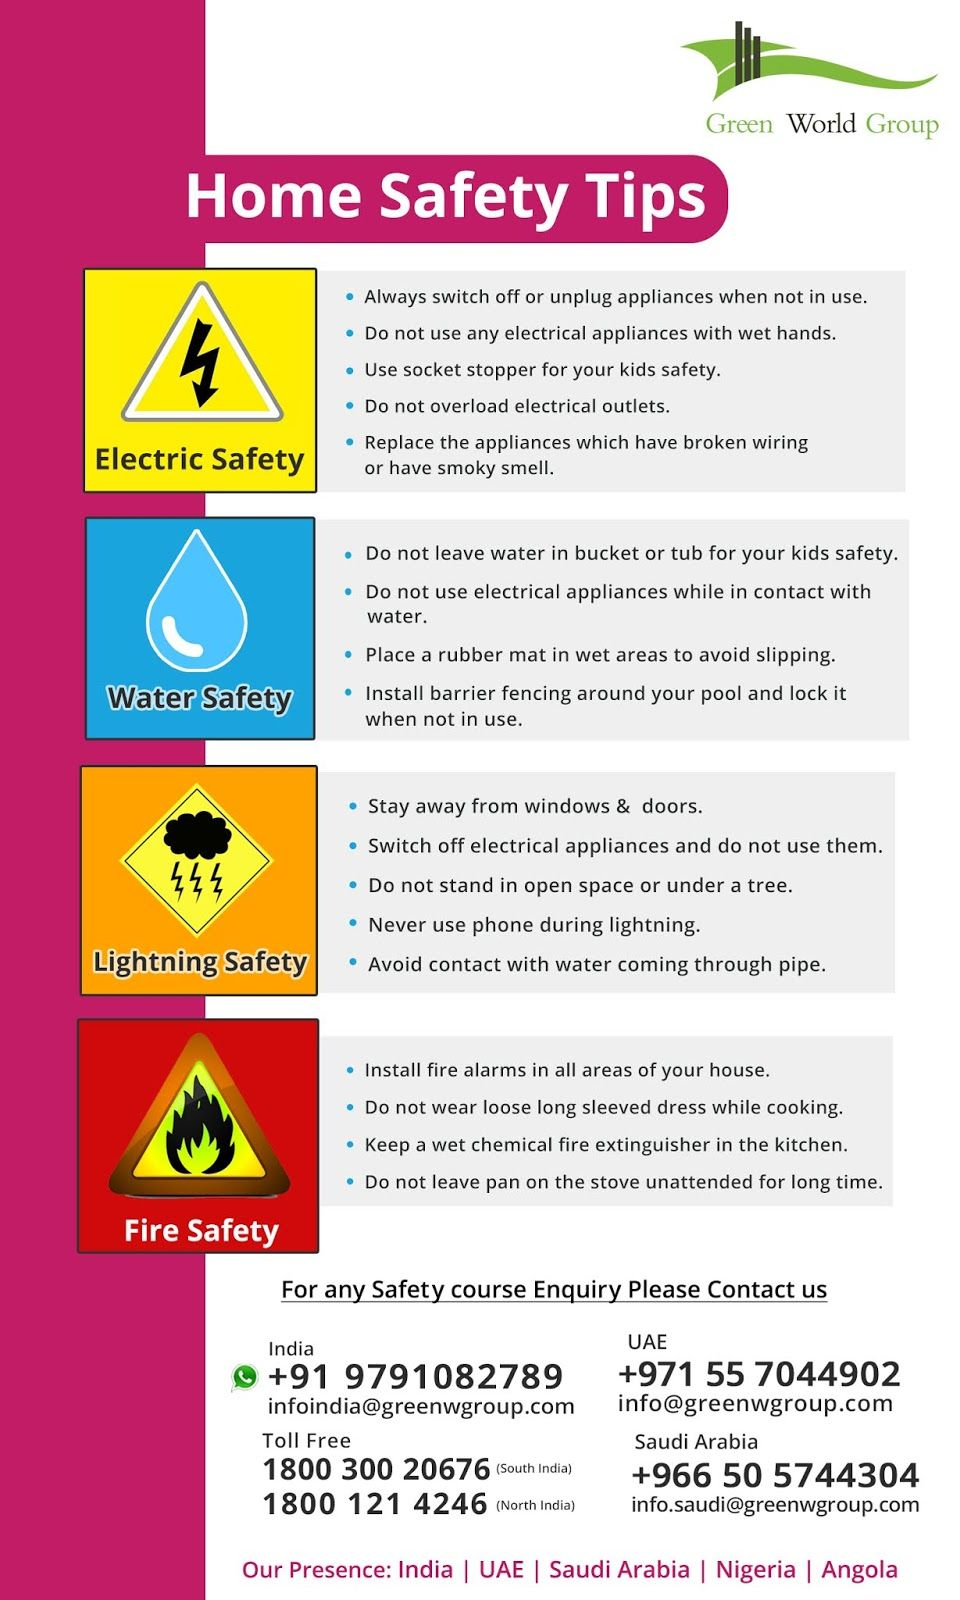 Here are some ways you can put these general home safety